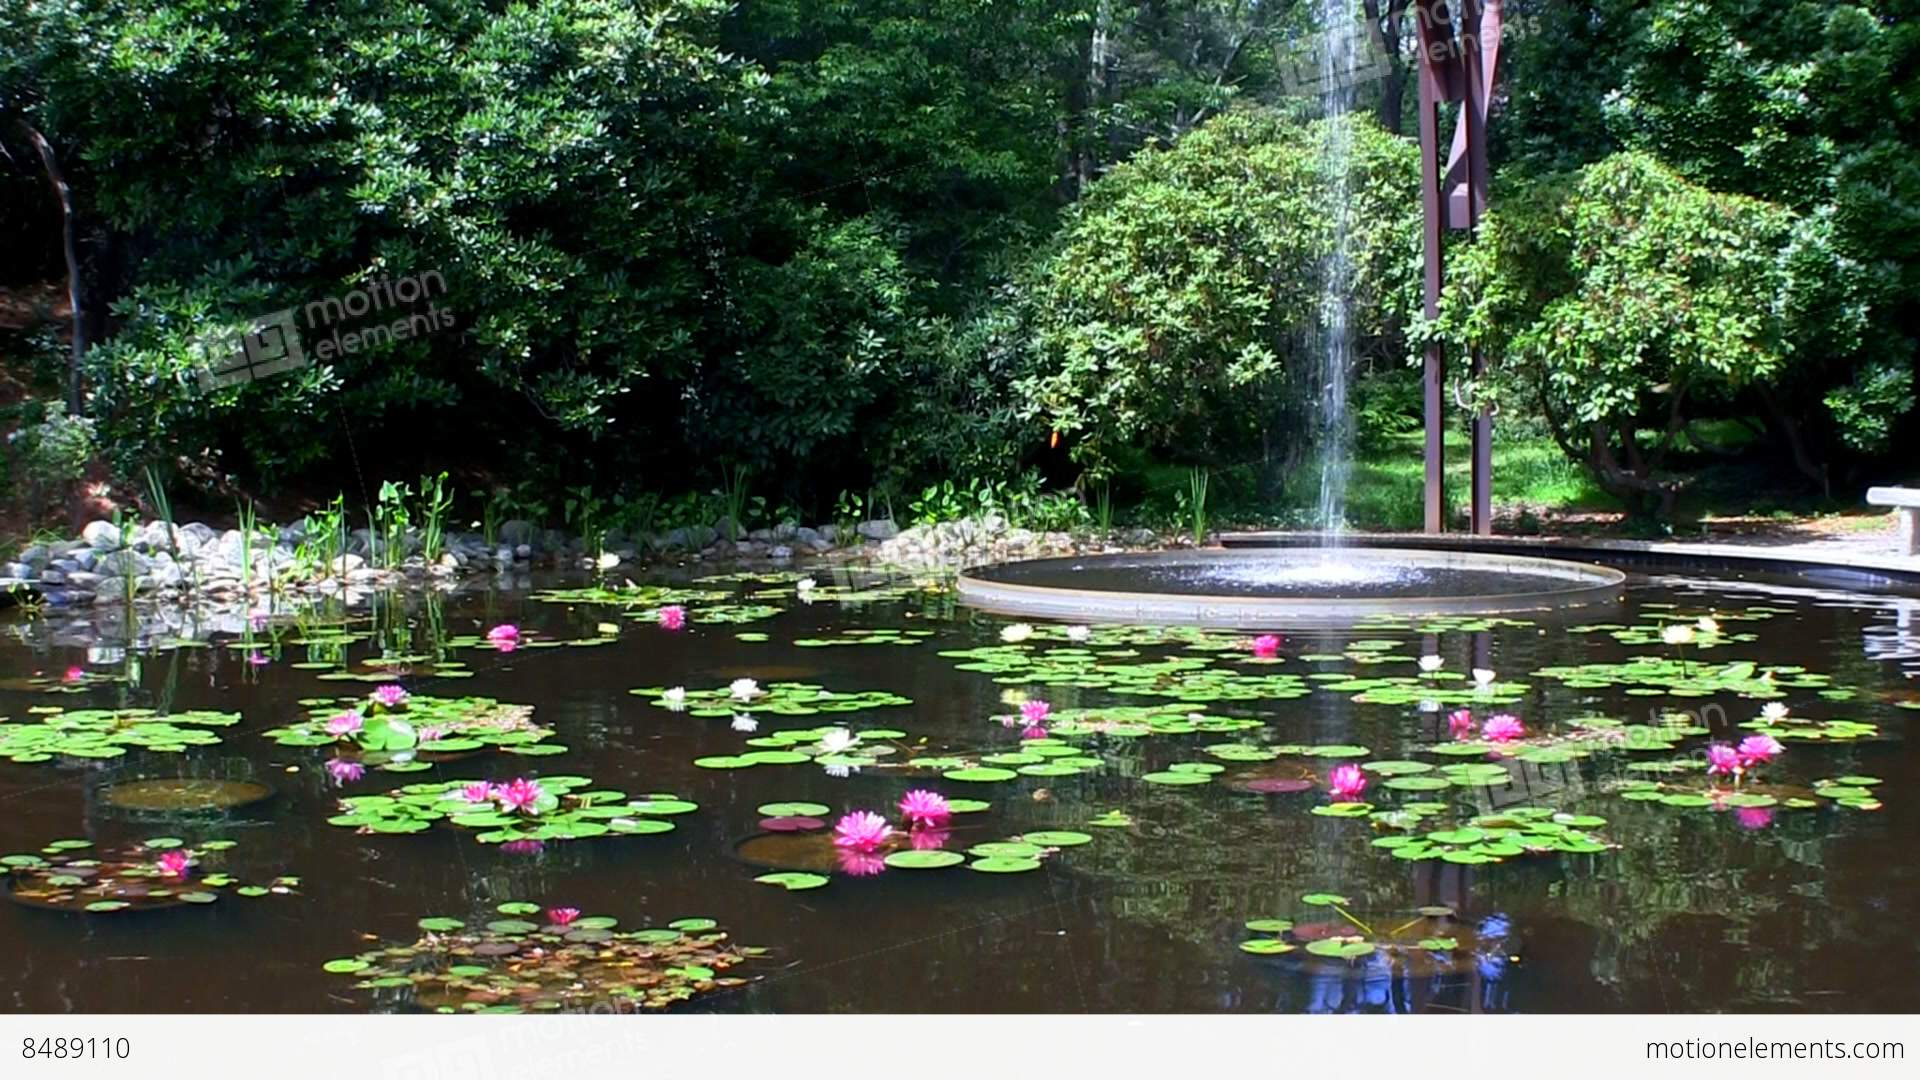 Flume Fountain Waterfall Lands In Oval Pool Of Lotus Flowers At